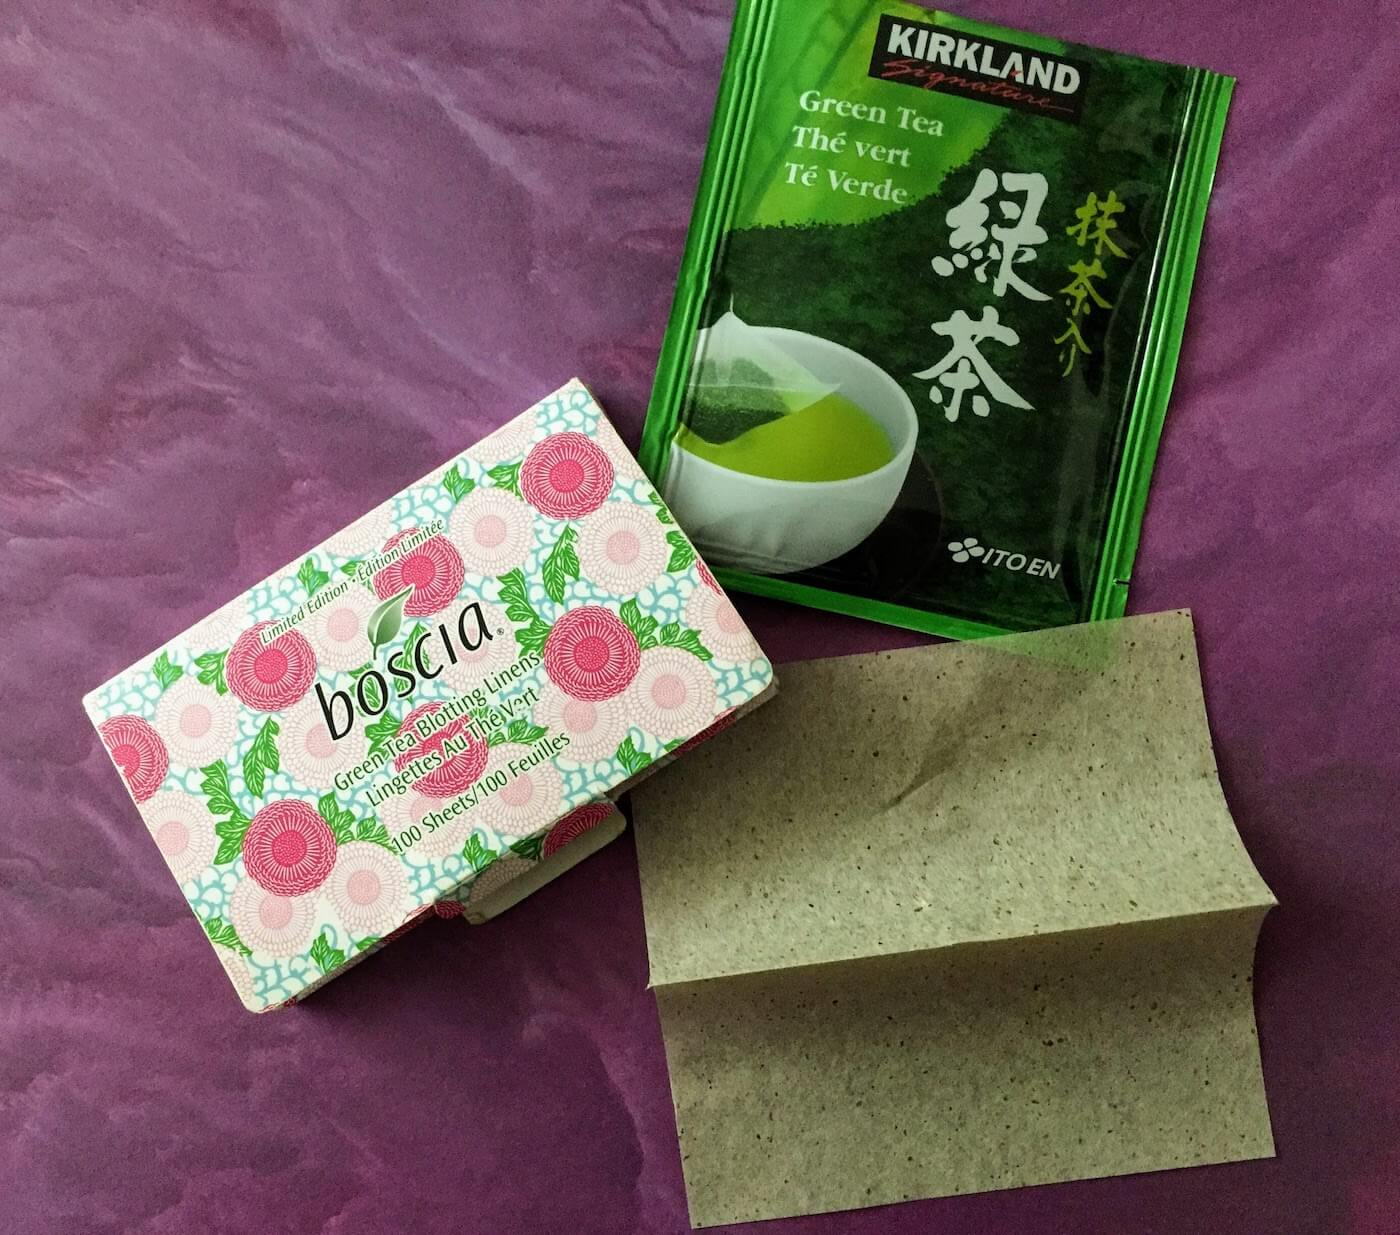 Boscia Green Tea Blotting Linens Review